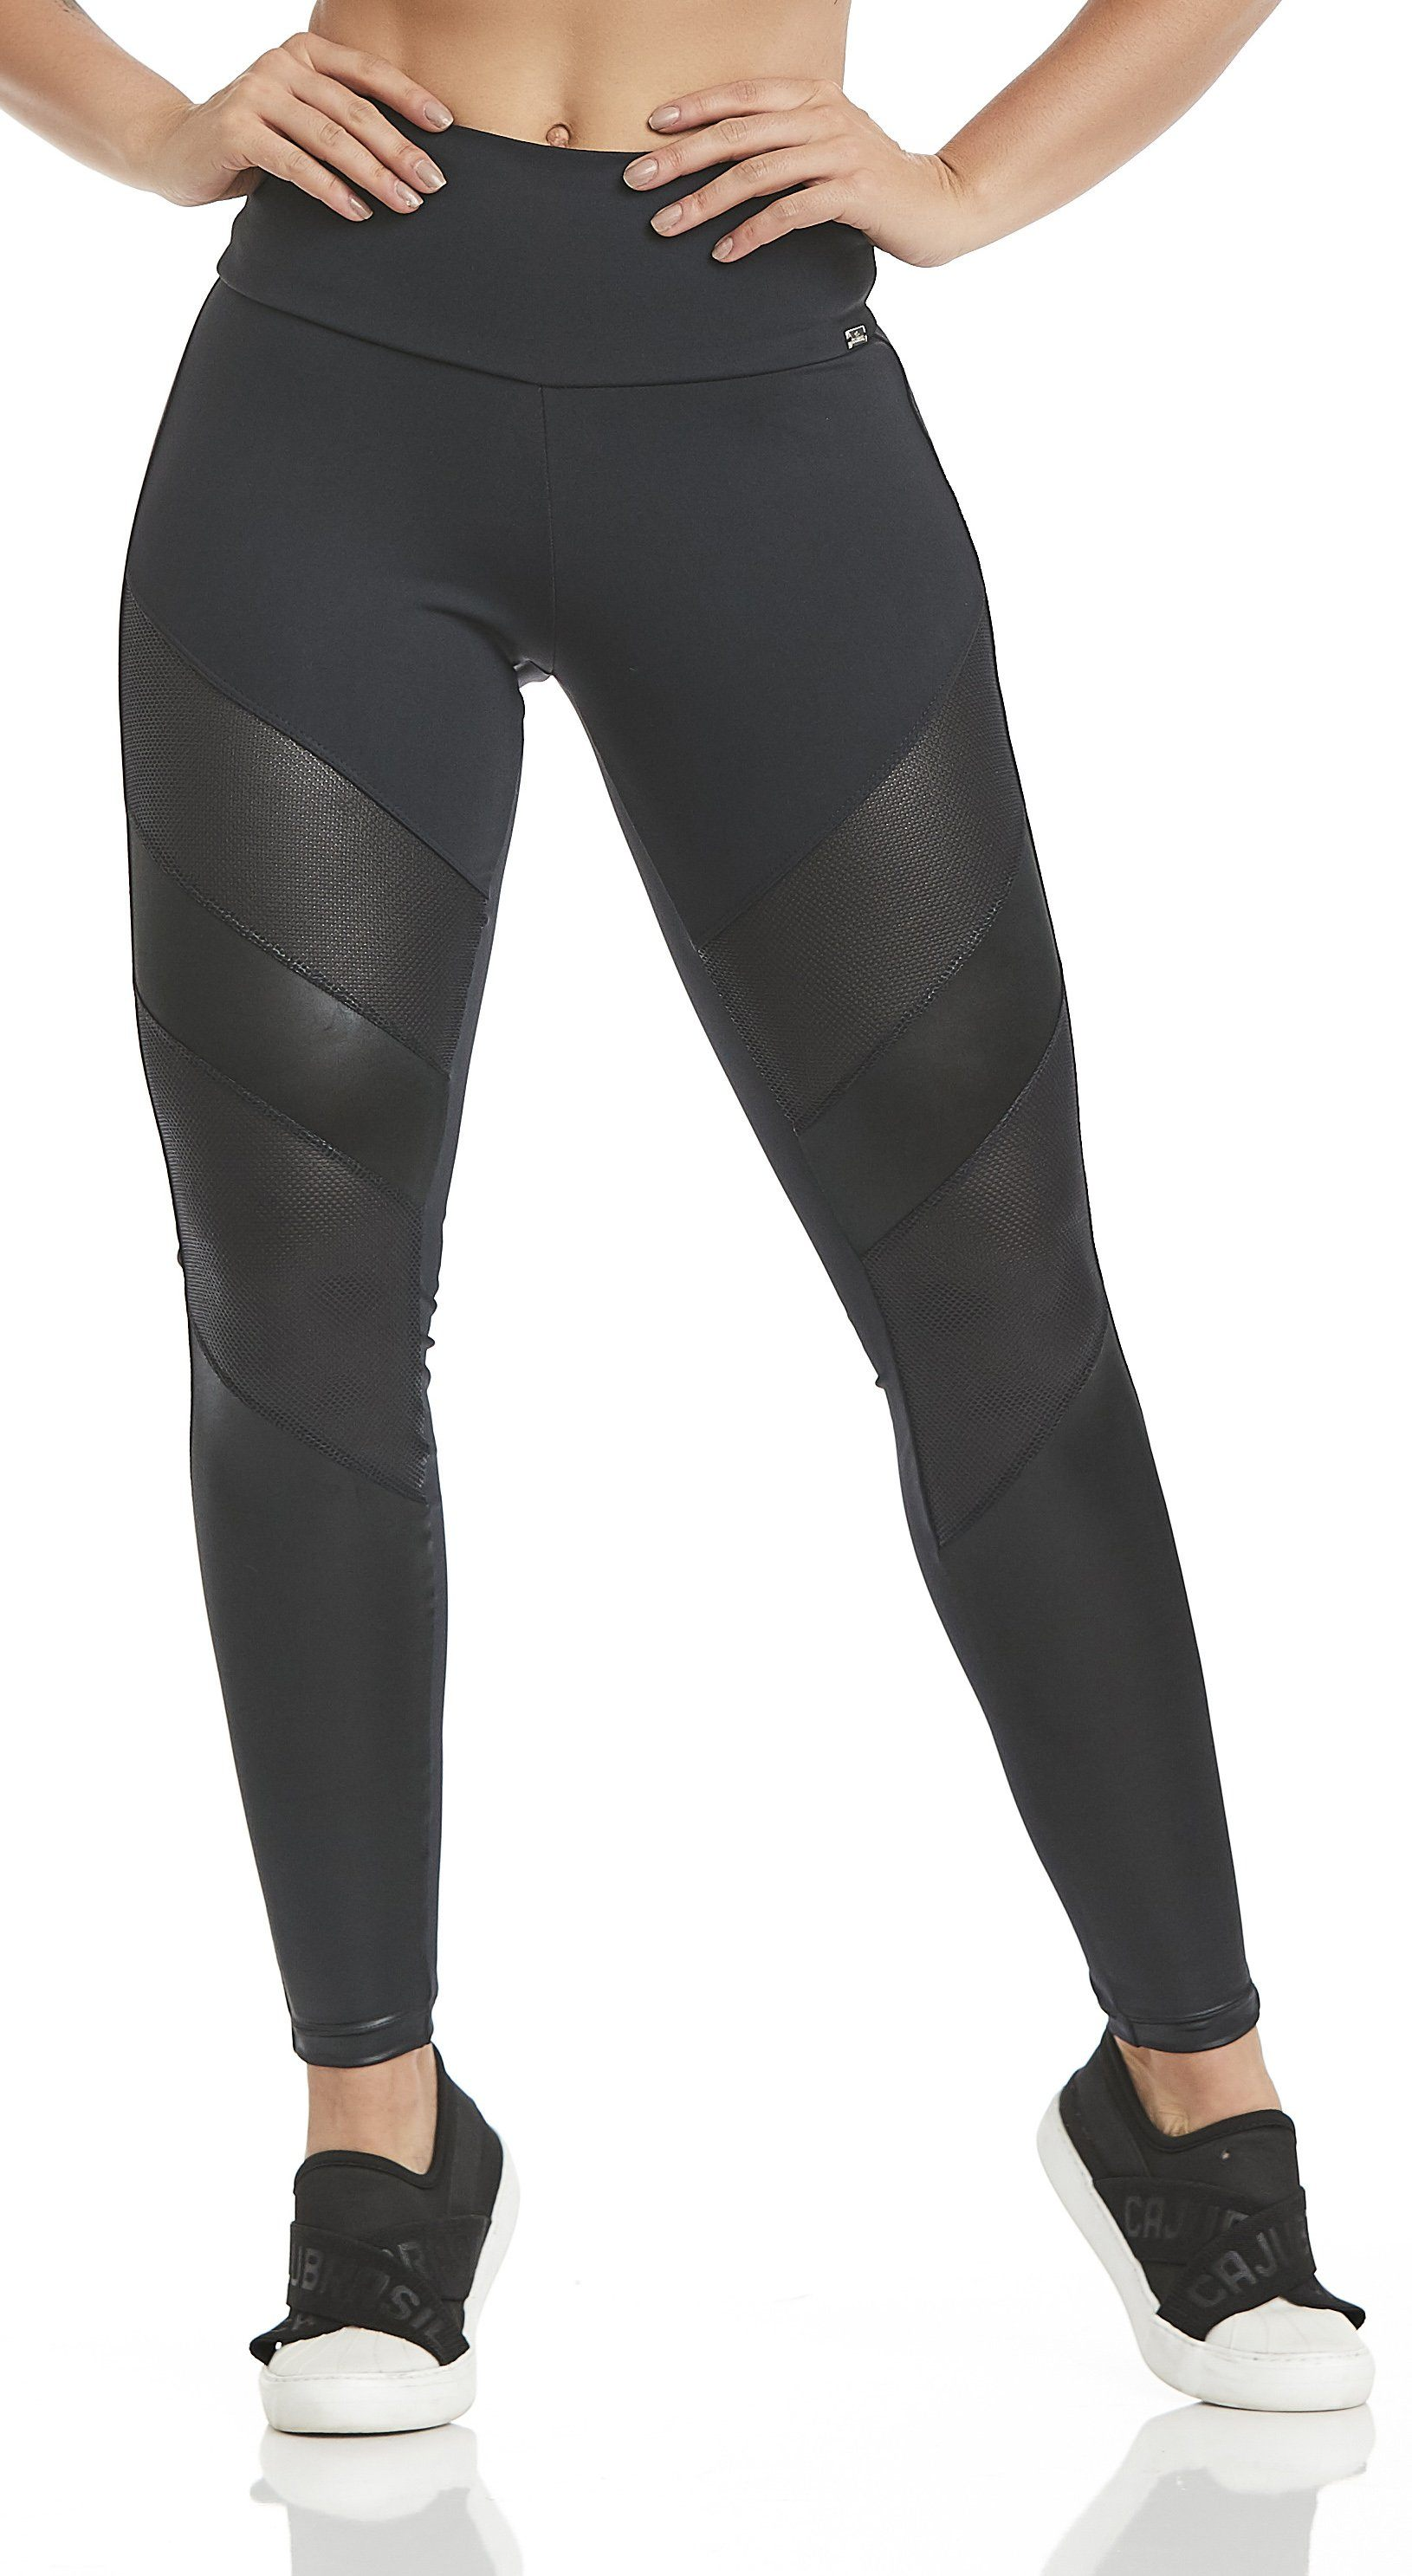 Brazilian Legging - High Waist NZ Leather Black